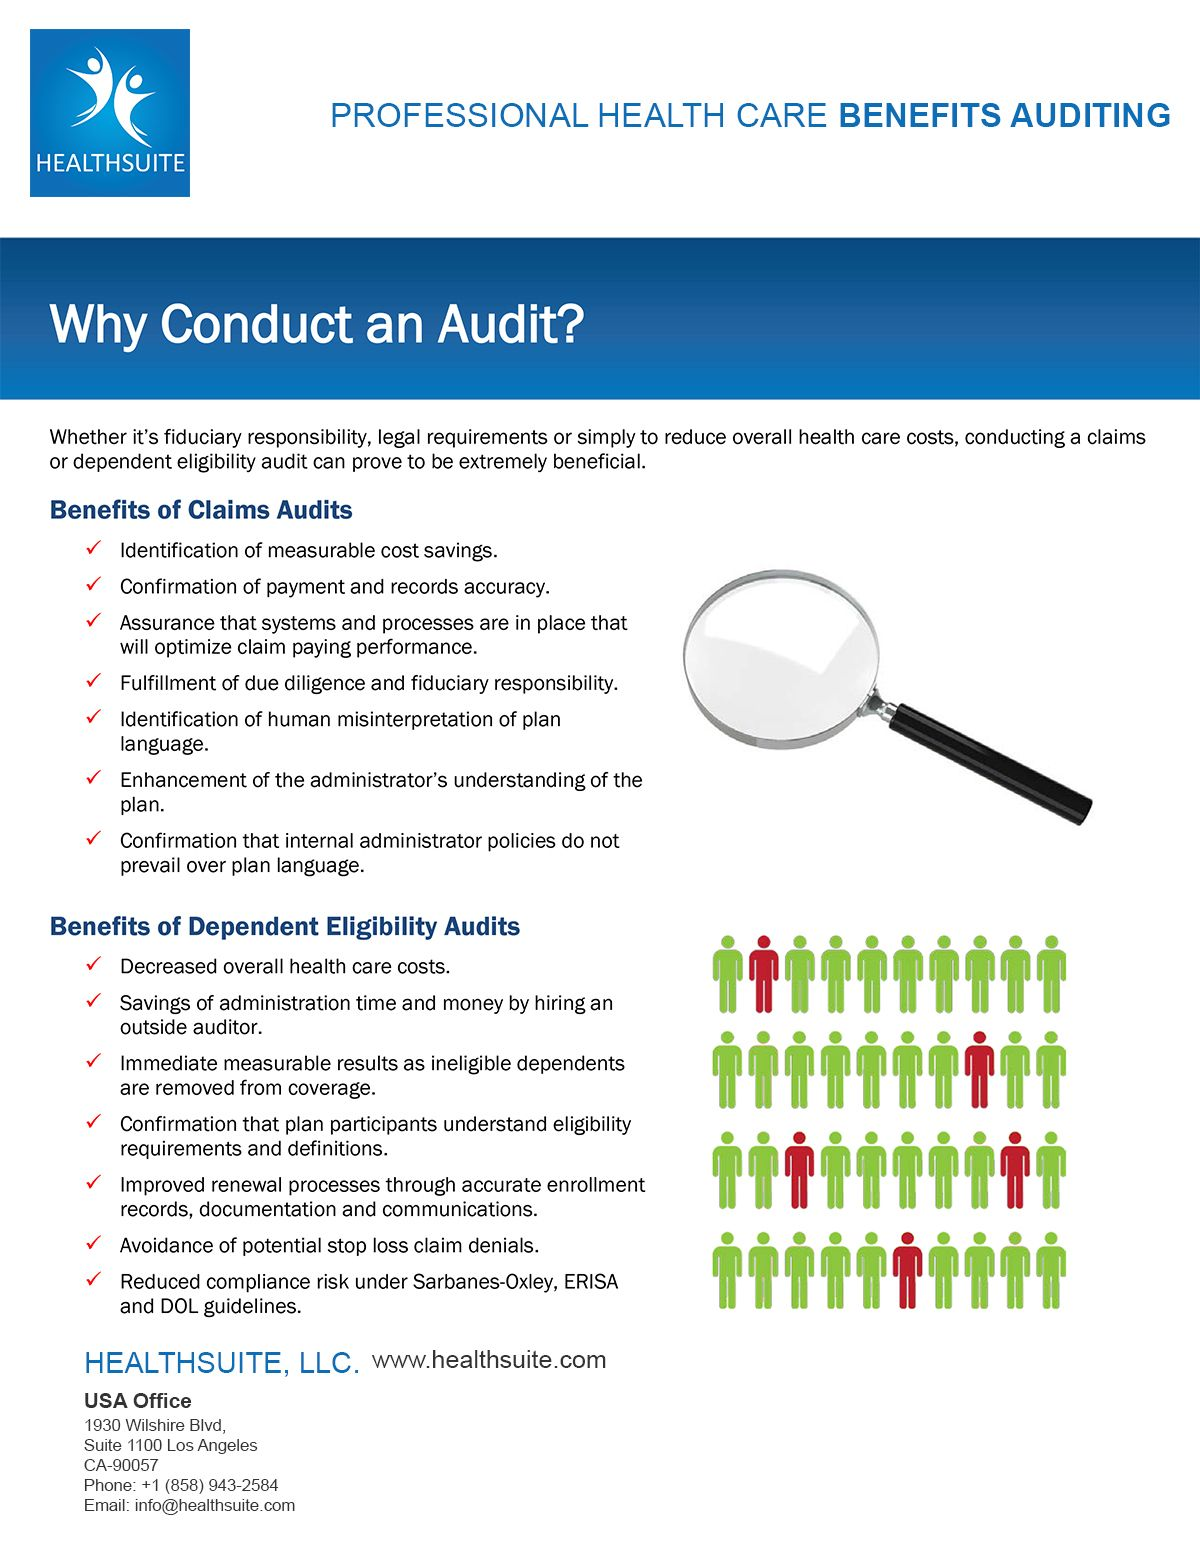 Healthcare Claim Audit By Healthsuite See The Many